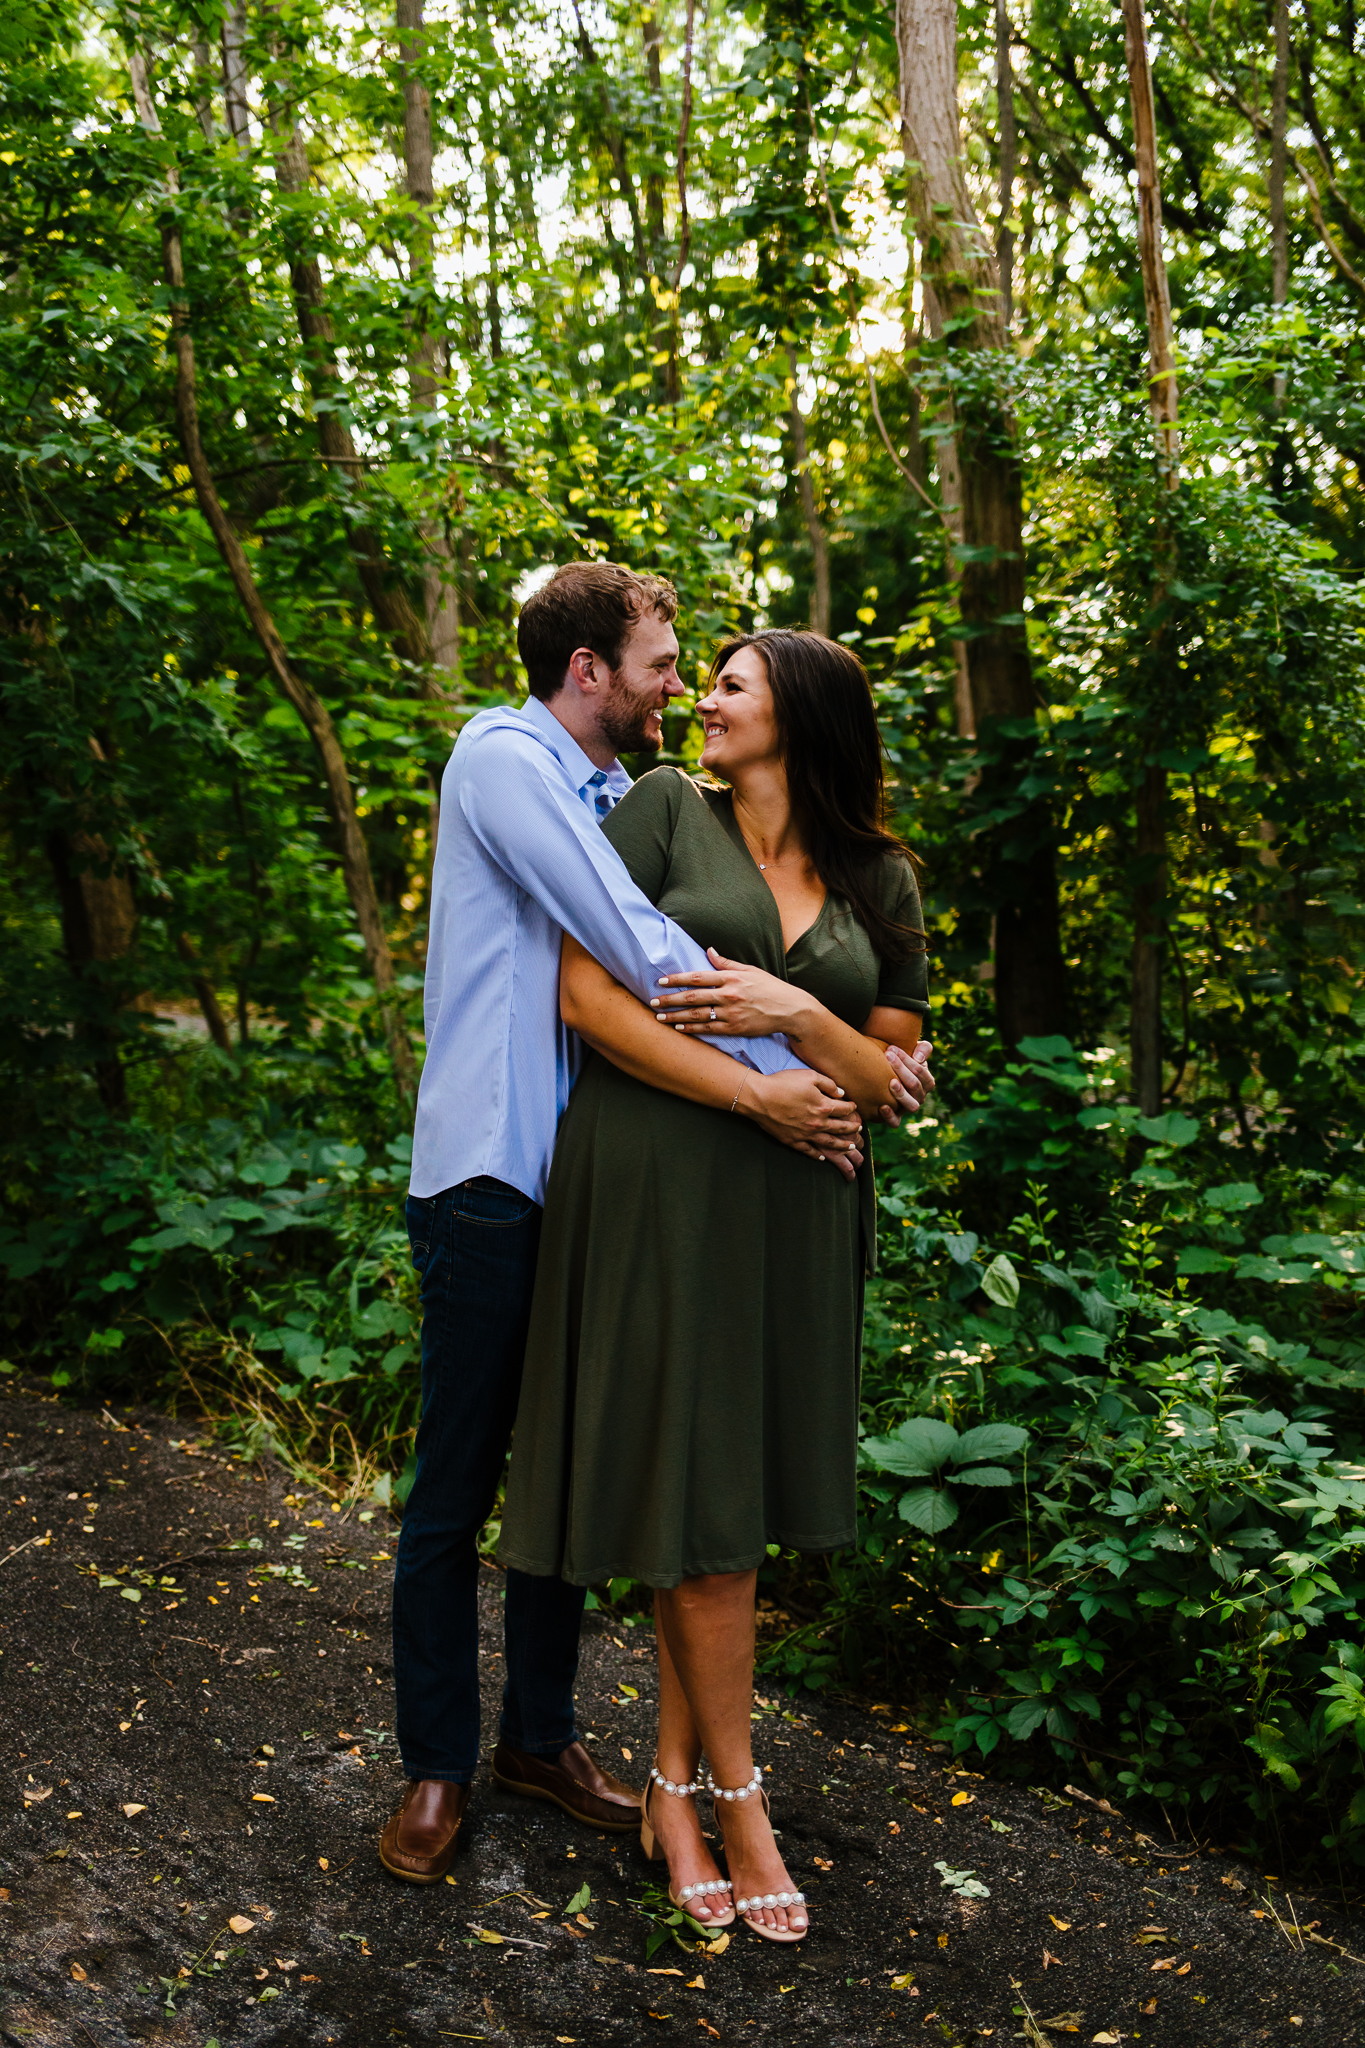 new york engagement photography, new york engagement photographer, new york engagement photos, syracuse new york engagement photography, syracuse new york engagement photographer, syracuse new york engagement photos, engagement session in syracuse new york, engagement photos in syracuse new york, upstate new york engagement photography, unique engagement session, urban engagement session, engagement photo inspo, nature engagement session, park engagement photos, black tie engagement photos